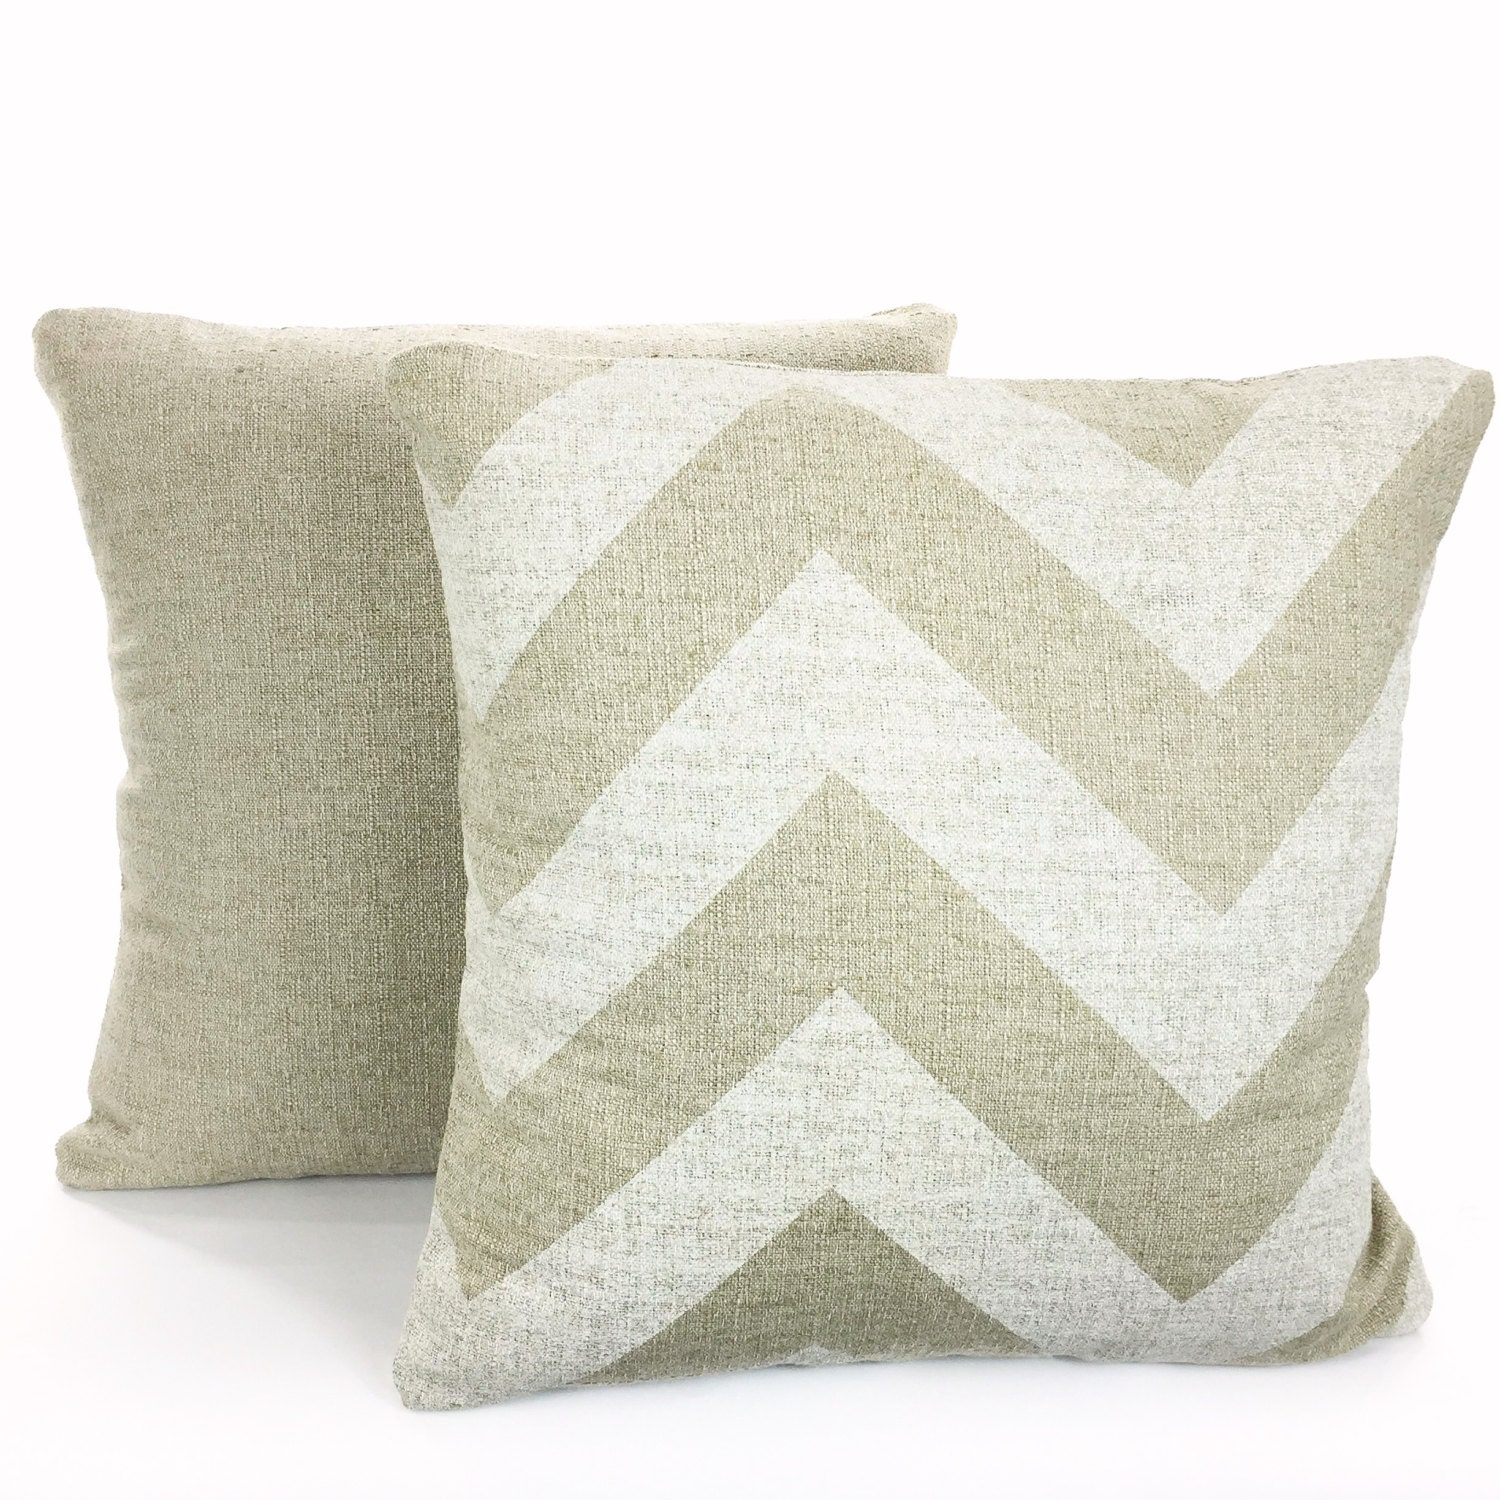 Decorative Burlap Pillow Covers : Burlap-Like Tan Pillow Covers Decorative Throw Pillows